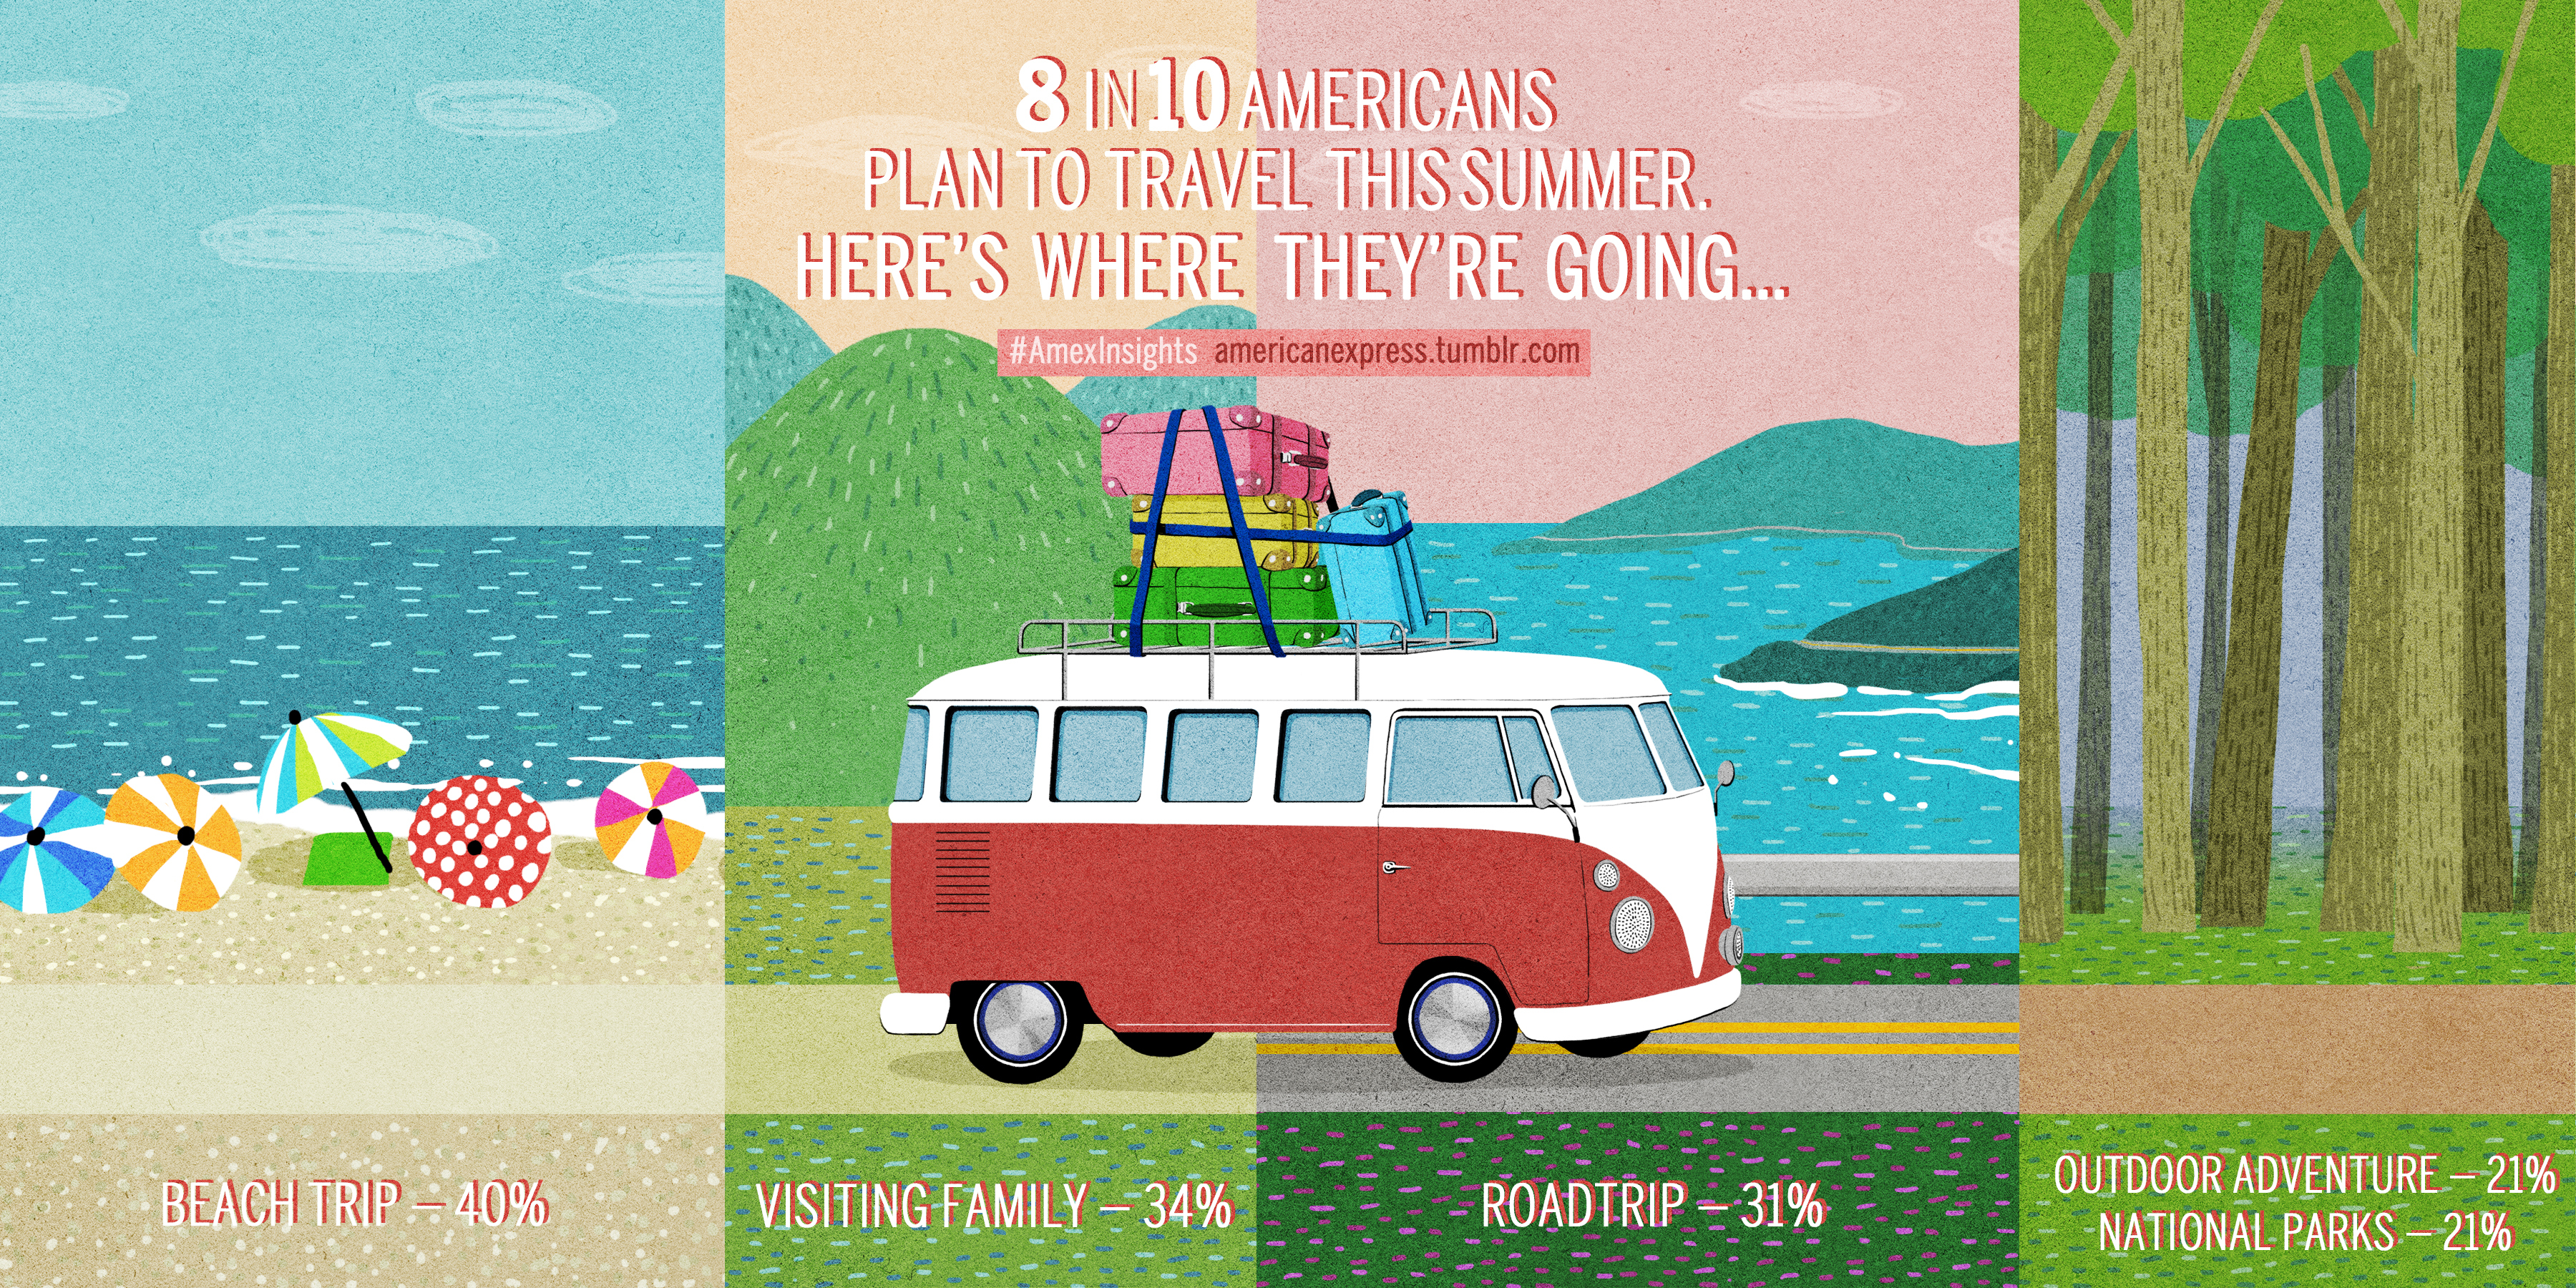 With spring in full swing, Americans are looking ahead to summer getaways, with 8 in 10 planning to travel this season. (Graphic: Business Wire)